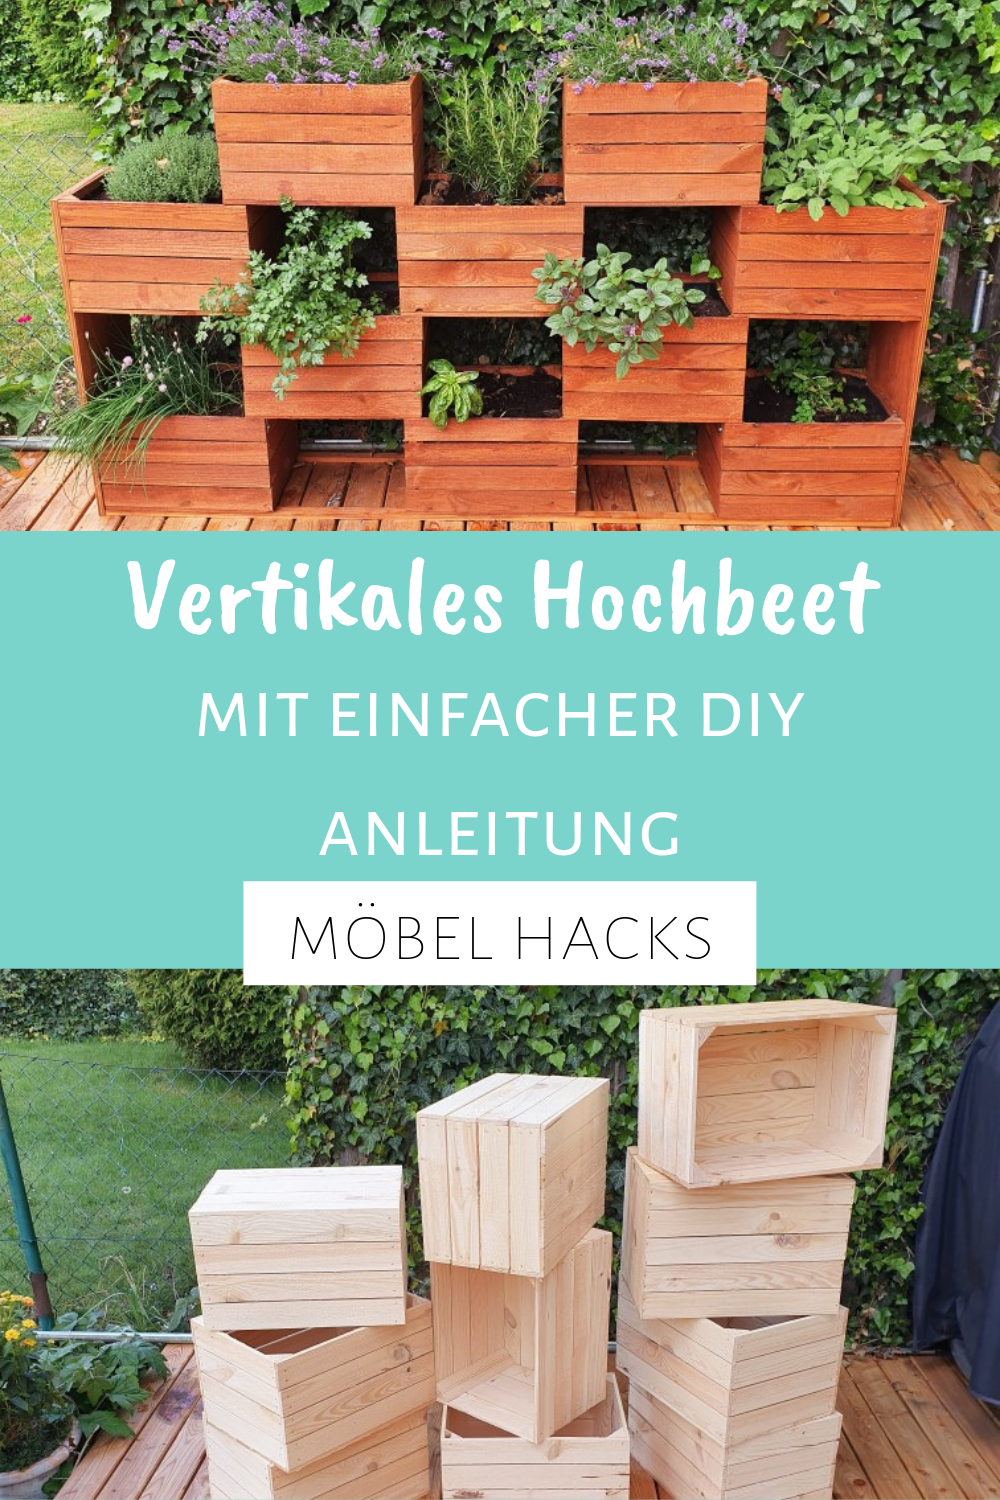 Vertical Garden For Herbs Build A Vertical Herb Bed For Your Garden Or Balcony You Can Also Use It In 2020 Vertikaler Garten Vertikaler Garten Diy Garten